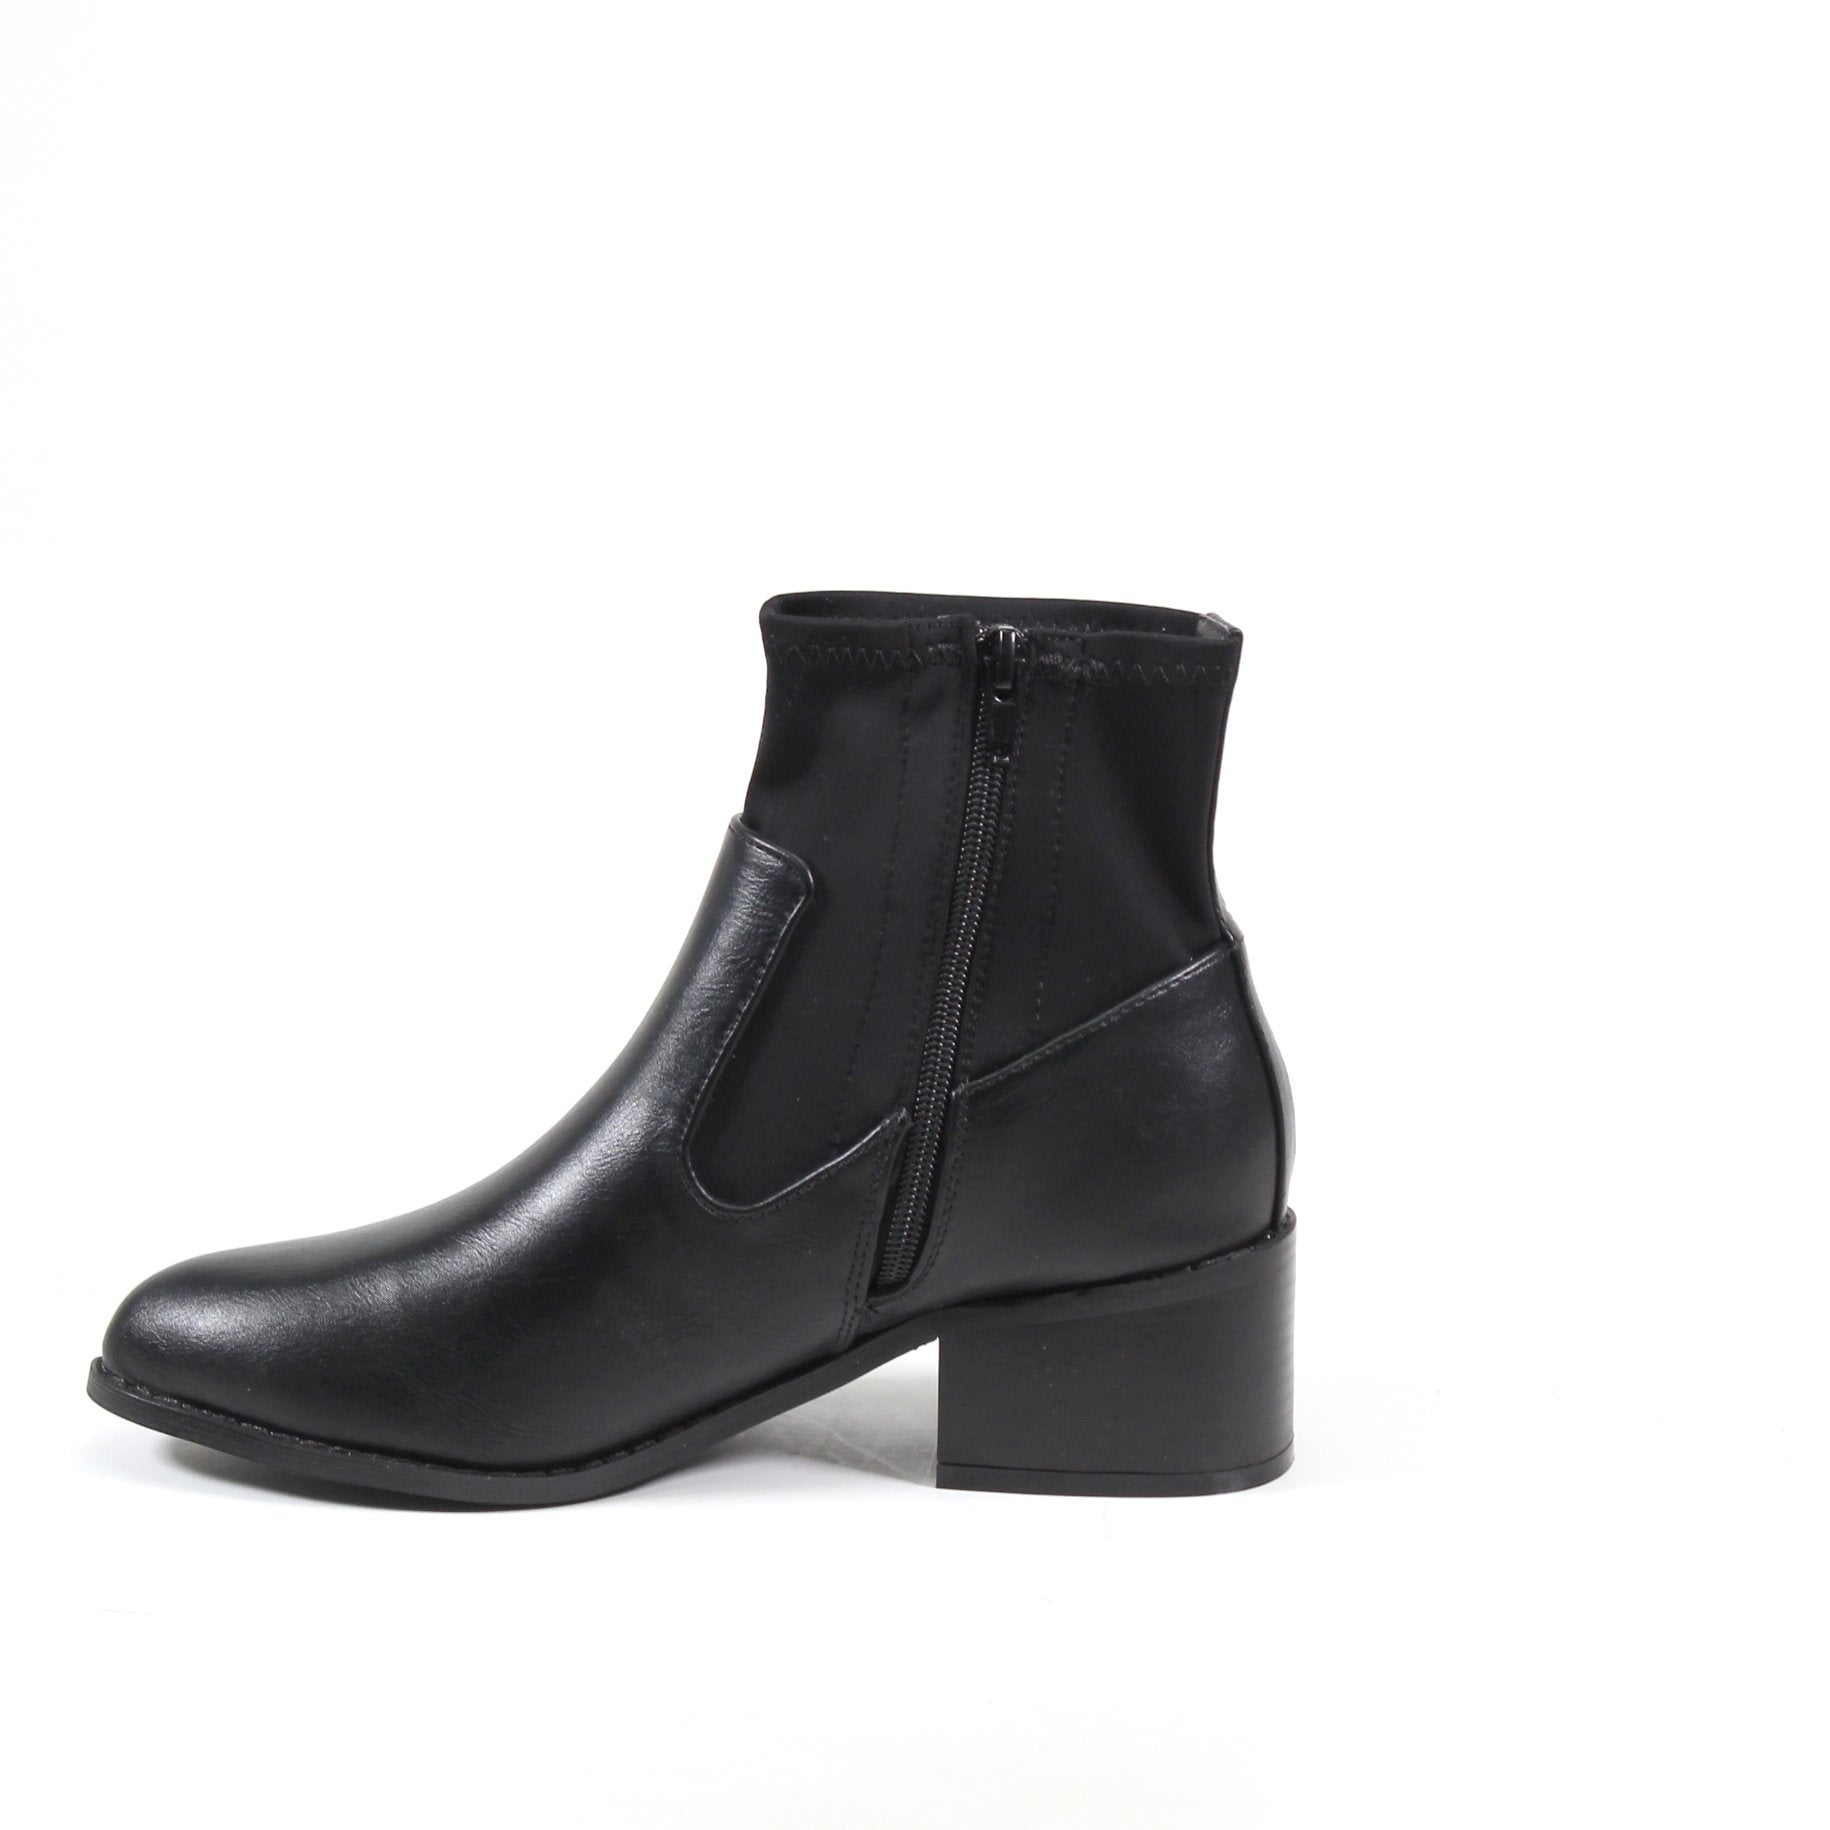 An over the ankle-high bootie featuring an imi leather vamp and stretch Lycra panel for a European inspired look. ALLY INN features an almond toe and inside zipper for a polished look.